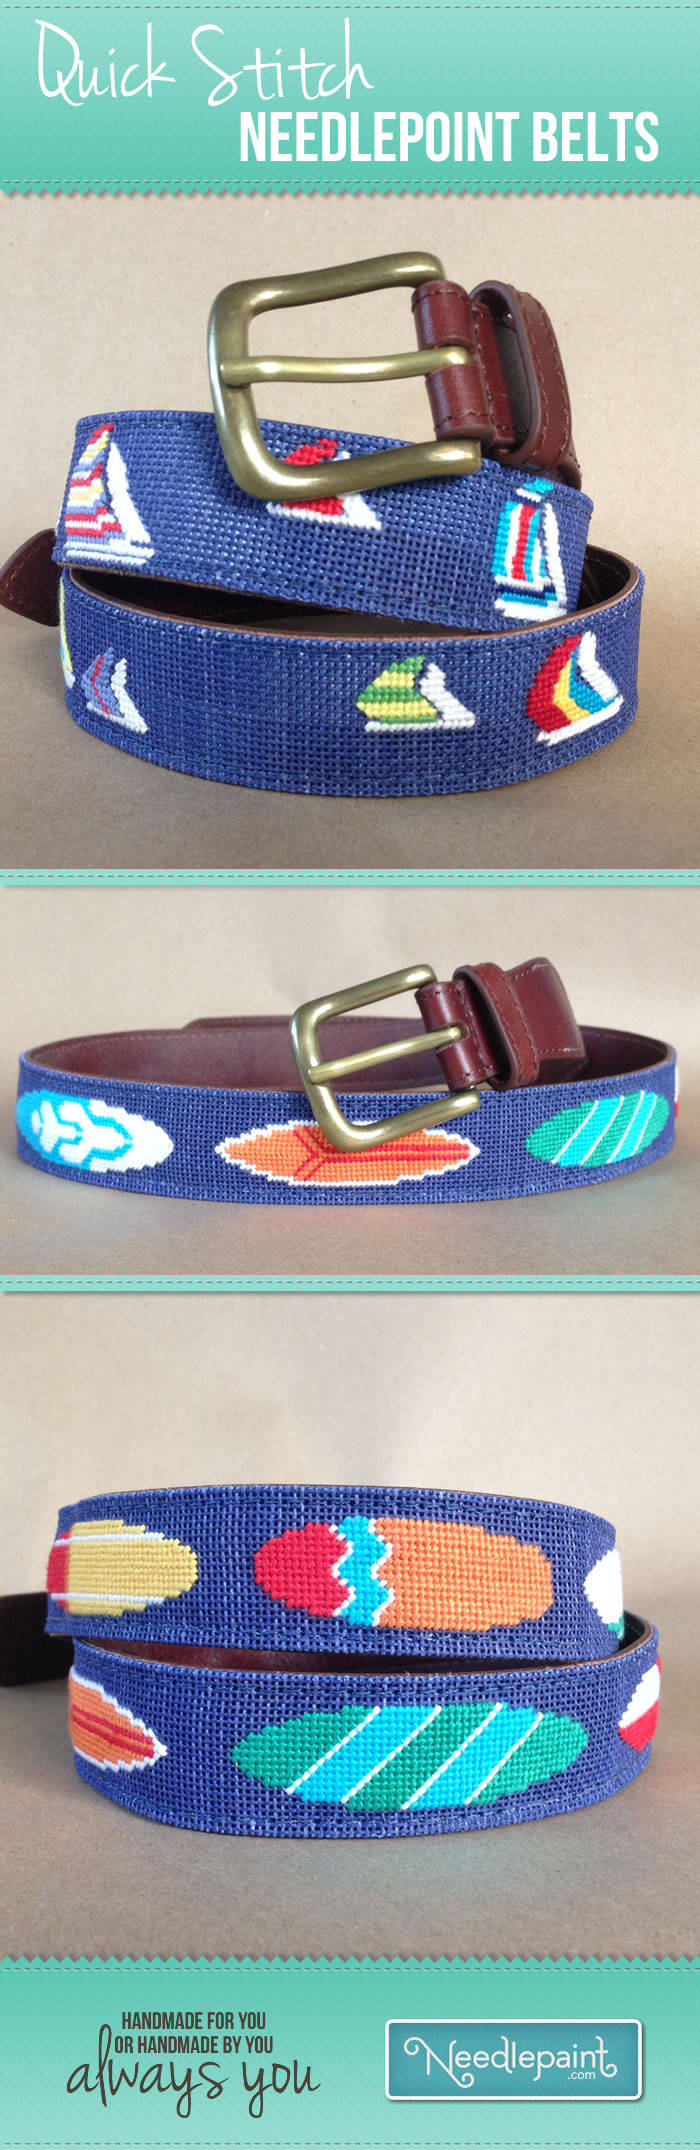 Quick Stitch #Needlepoint Belts. A lot faster to stitch and still looks great! Learn more about the open weave concept on our blog. #preppy www.needlepaint.com